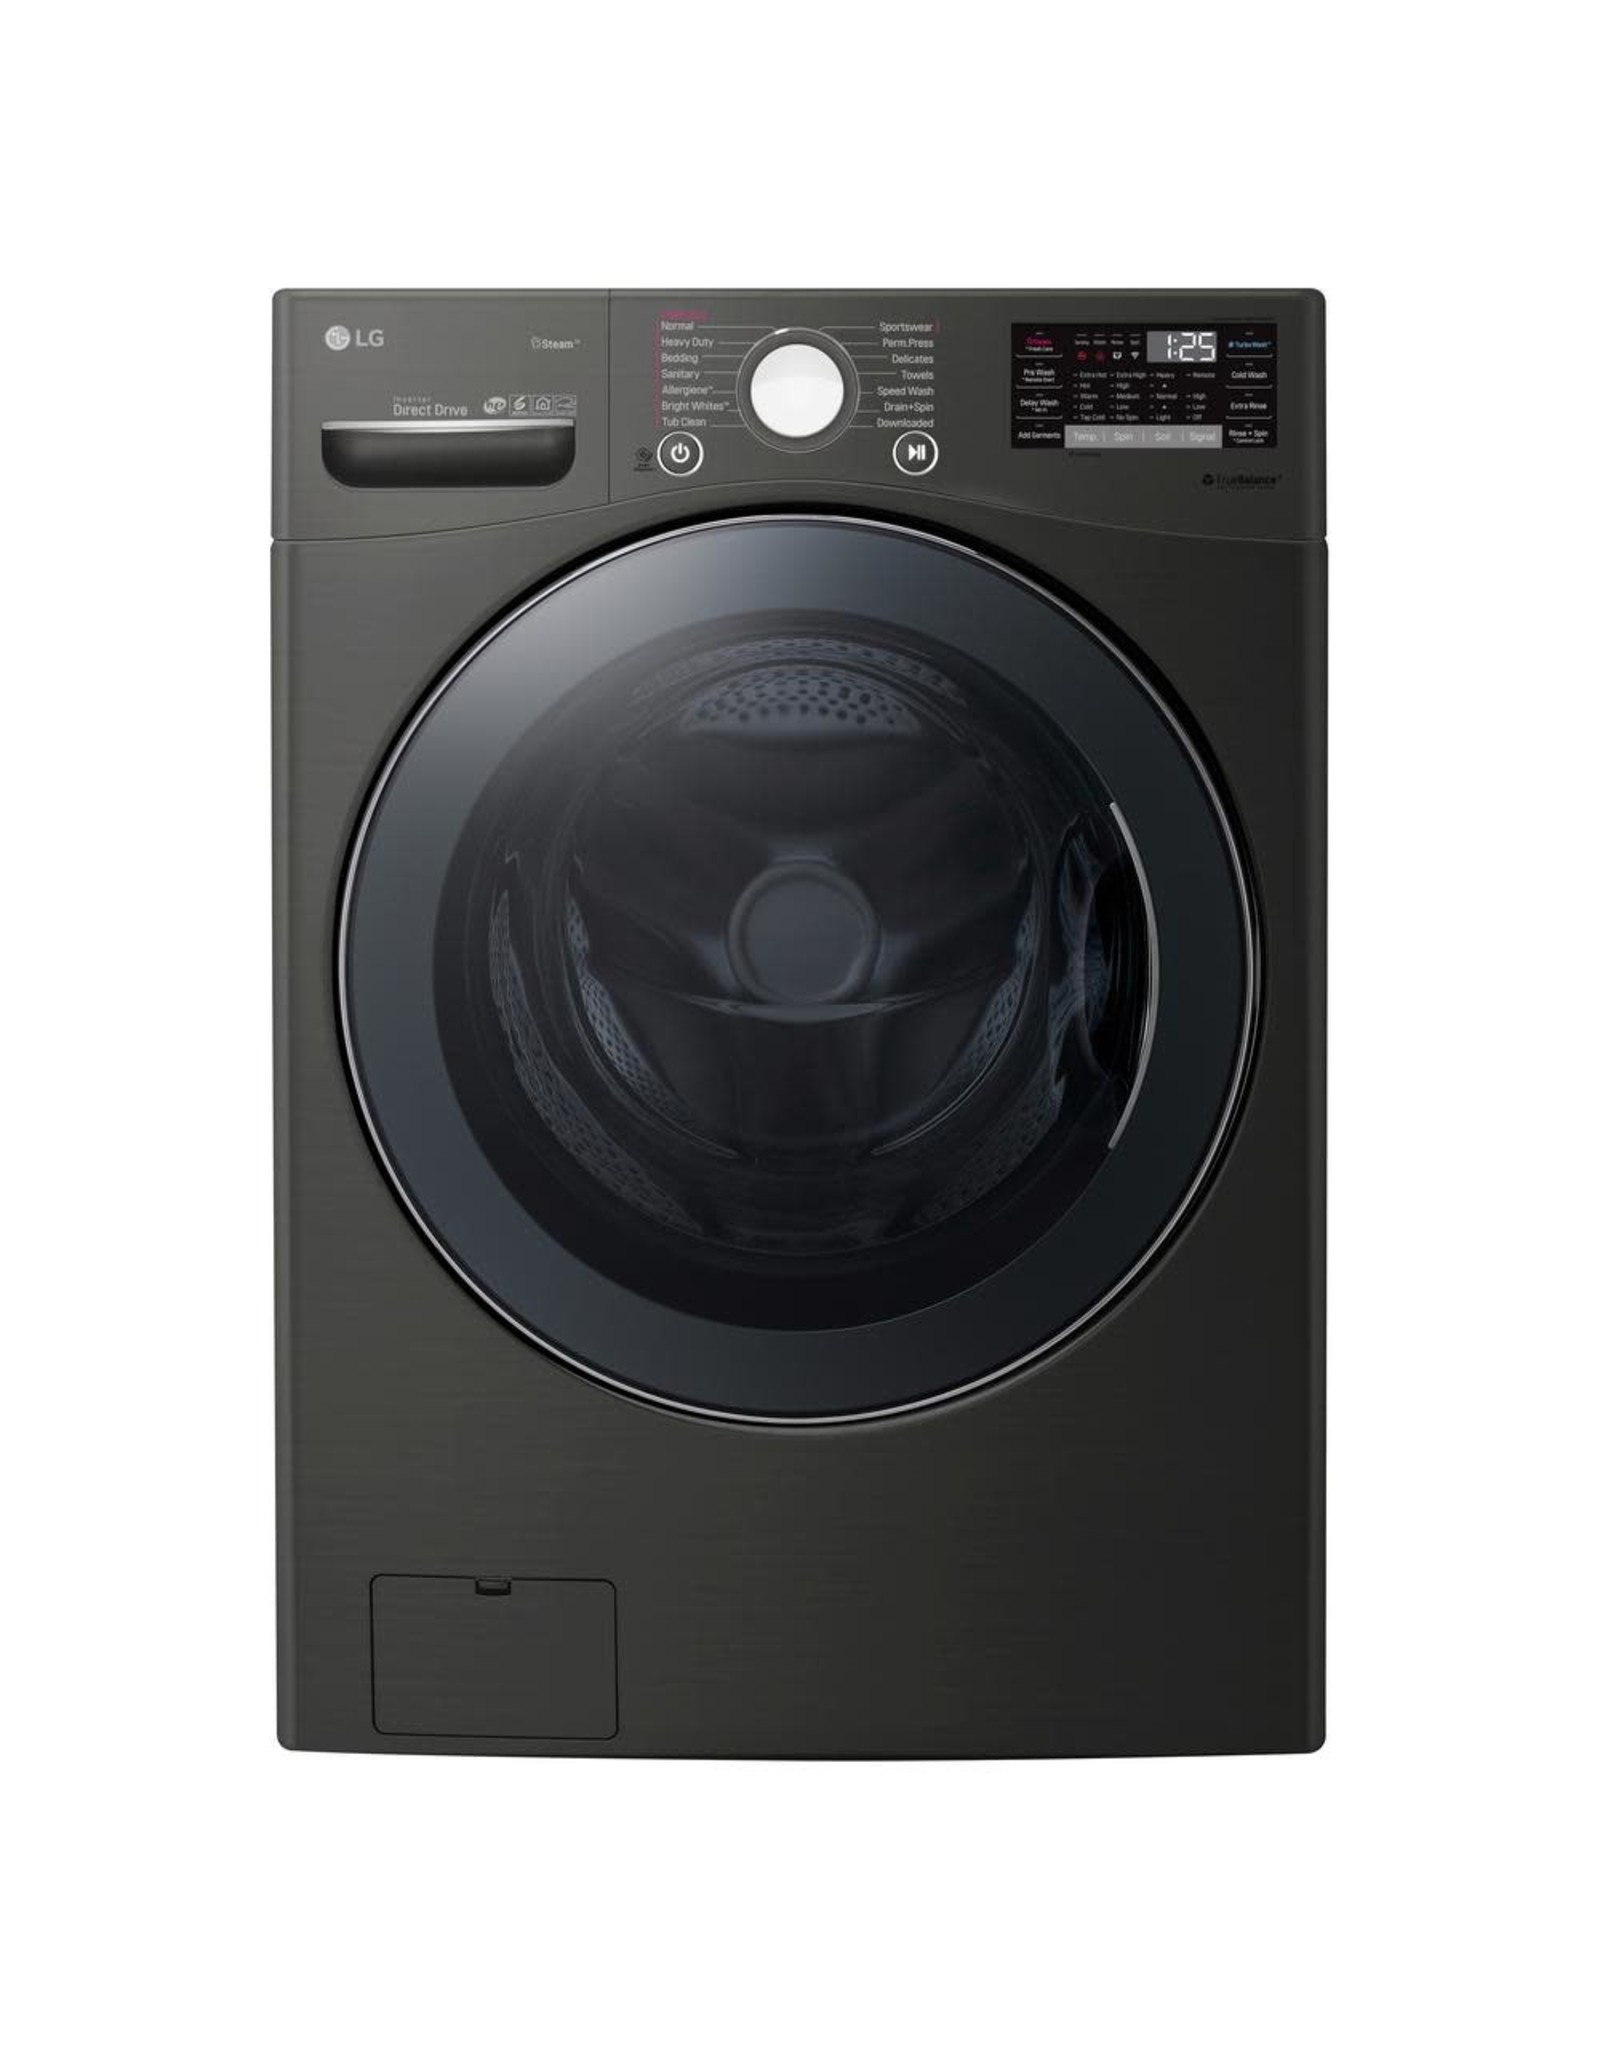 LG Electronics WM3900HBA /666 4.5 cu. ft HE Ultra Large Smart Front Load Washer with TurboWash360, Steam & Wi-Fi in Black Steel, ENERGY STAR